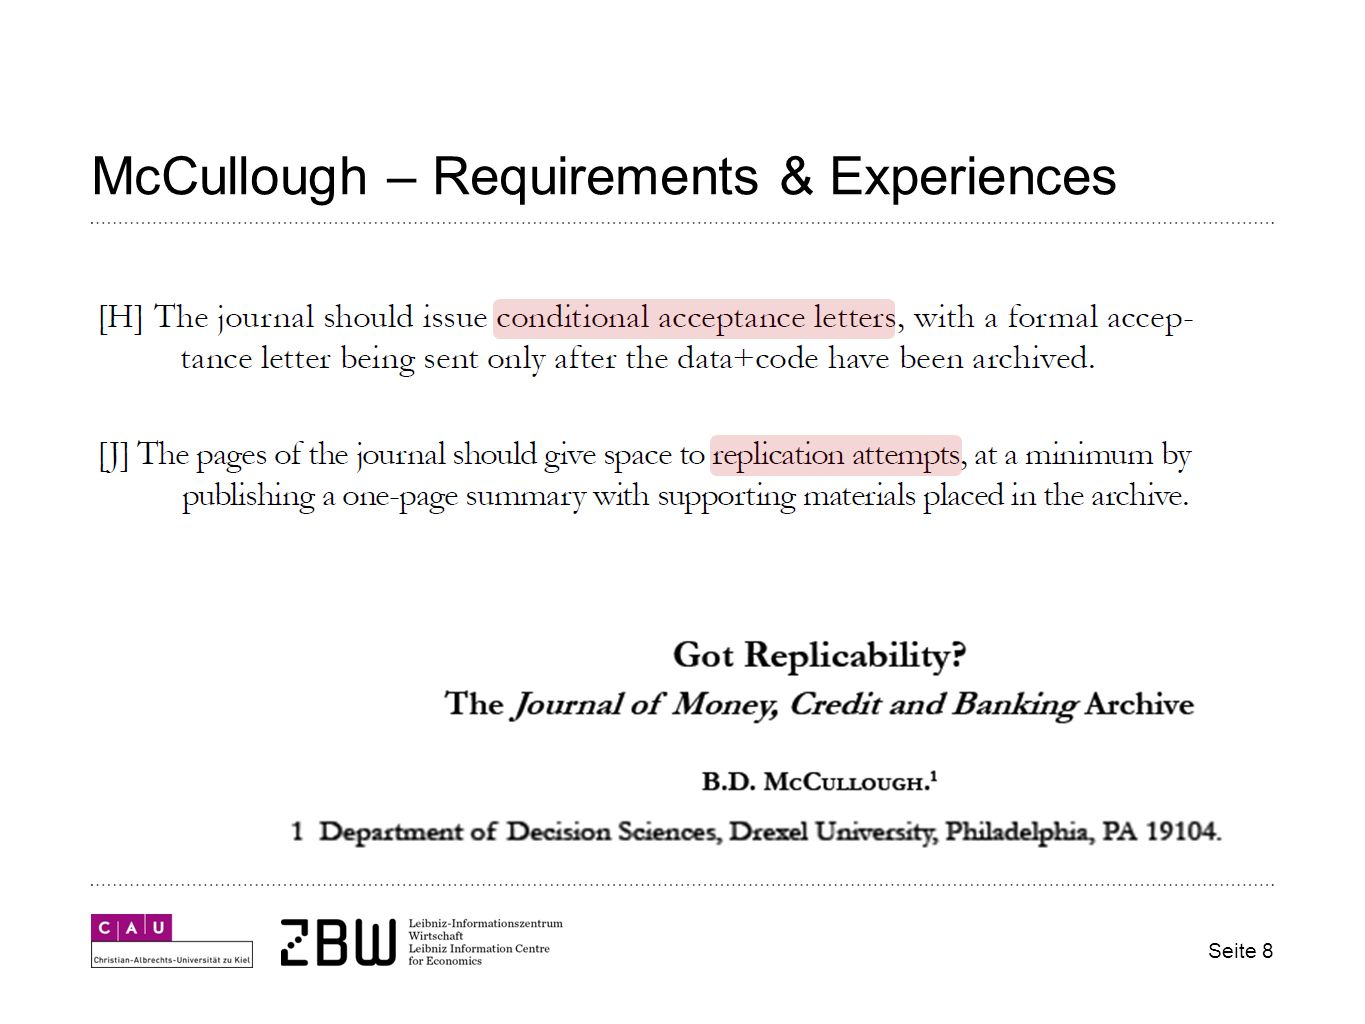 McCullough – Requirements & Experiences Seite 8